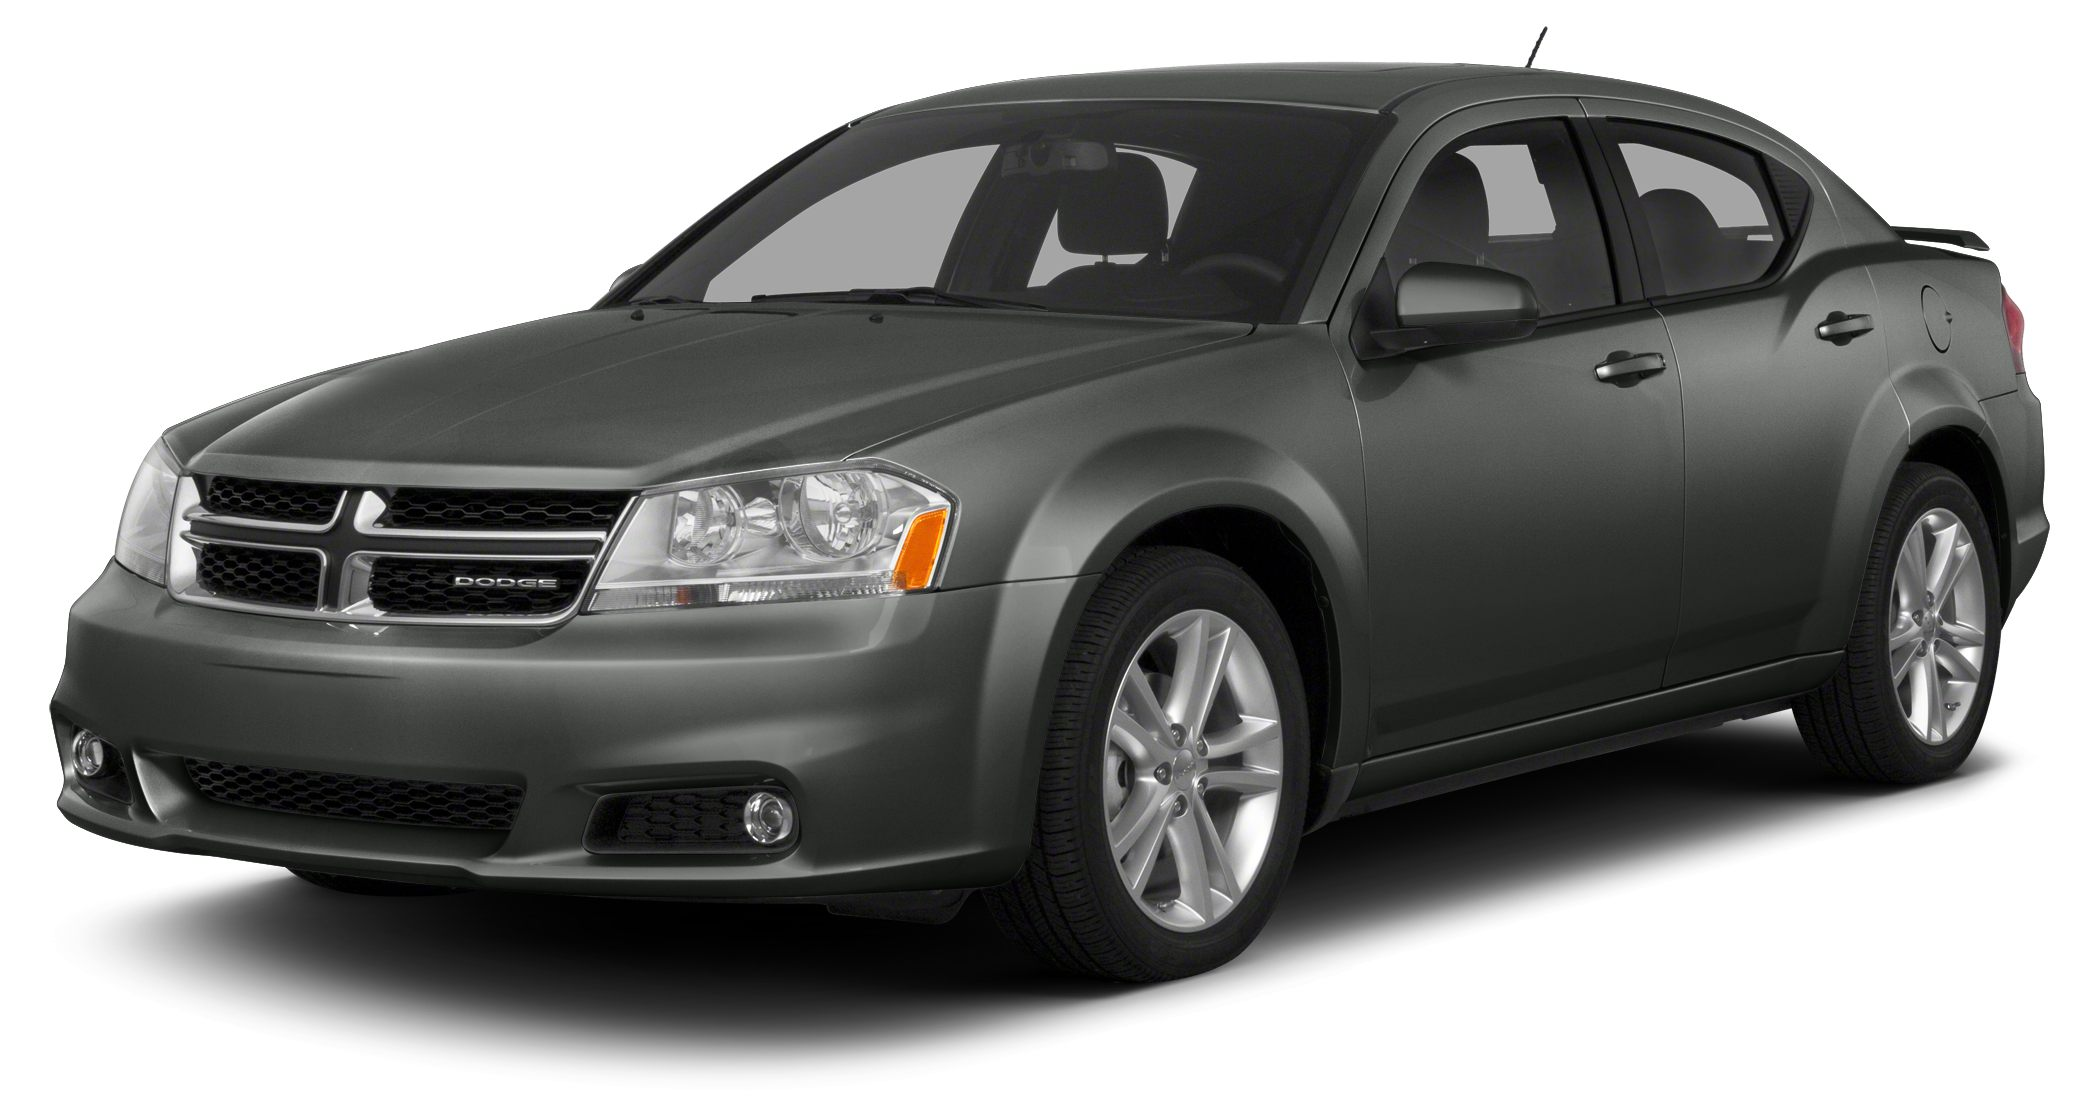 2013 Dodge Avenger SE Lifetime Engine Warranty at NO CHARGE on all pre-owned vehicles Courtesy Aut